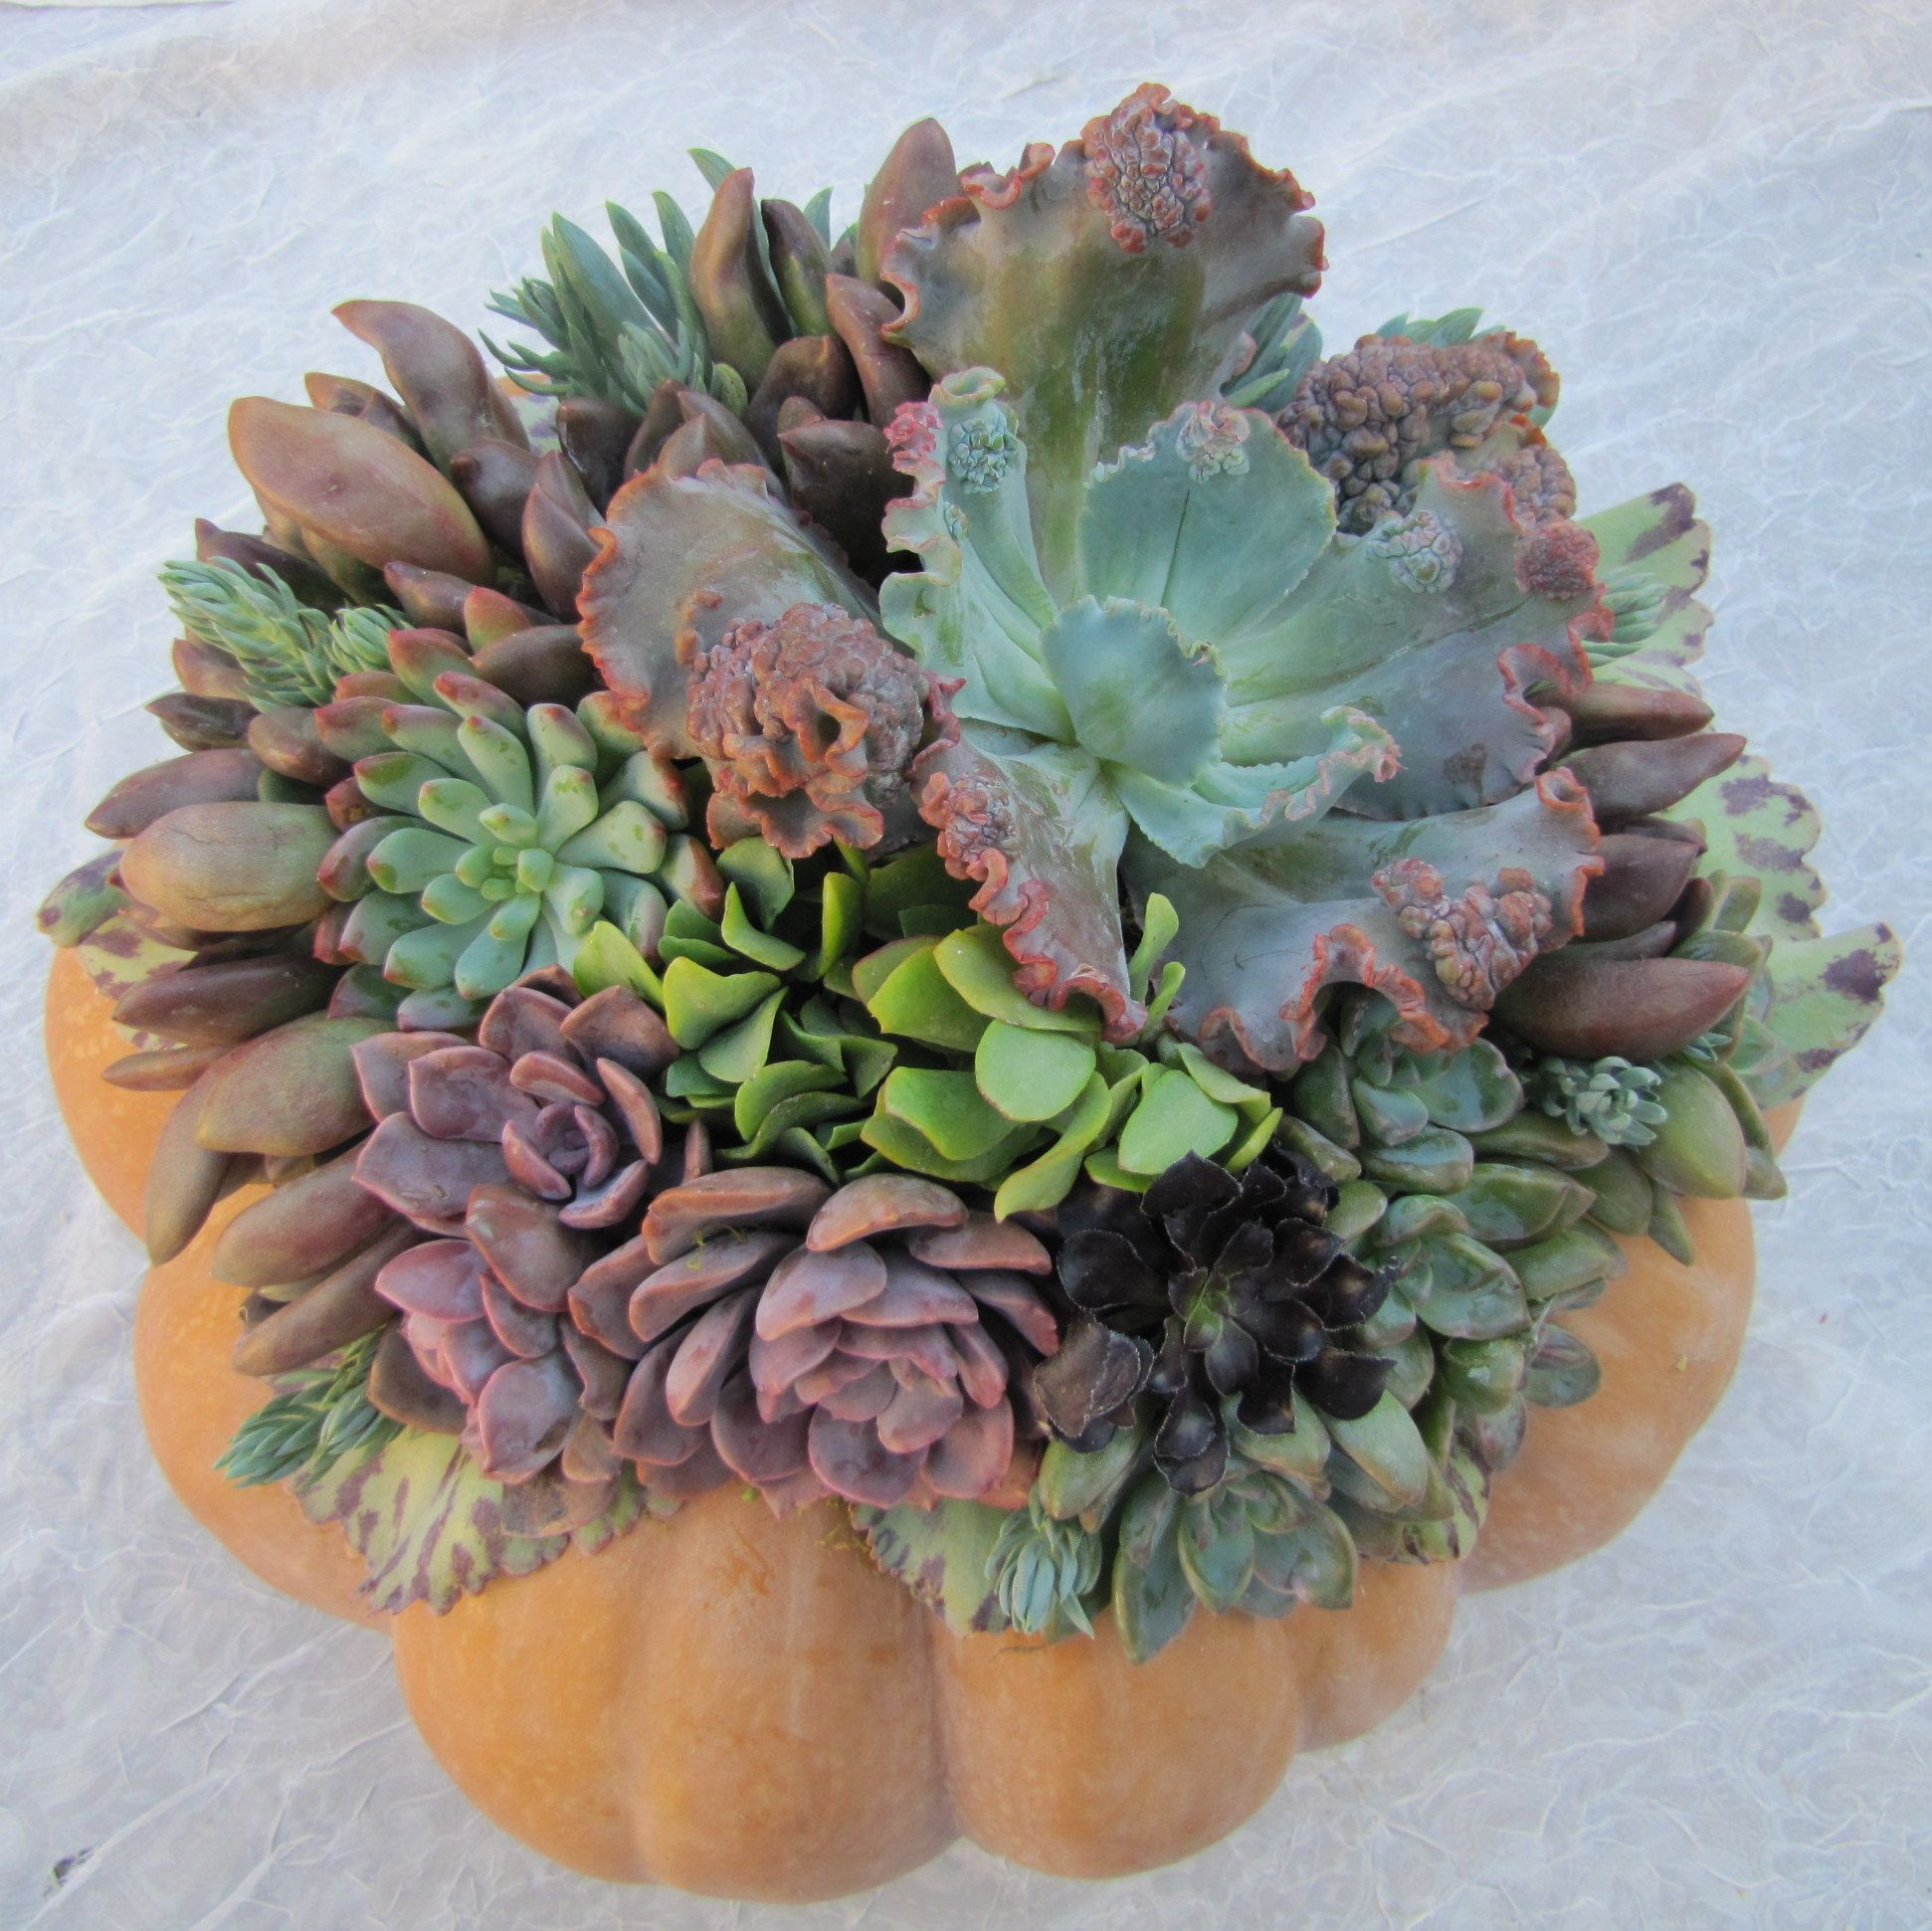 festive holiday decorations for home decor and gifting :: linda estrin garden design - pumpkins :: Gardenista